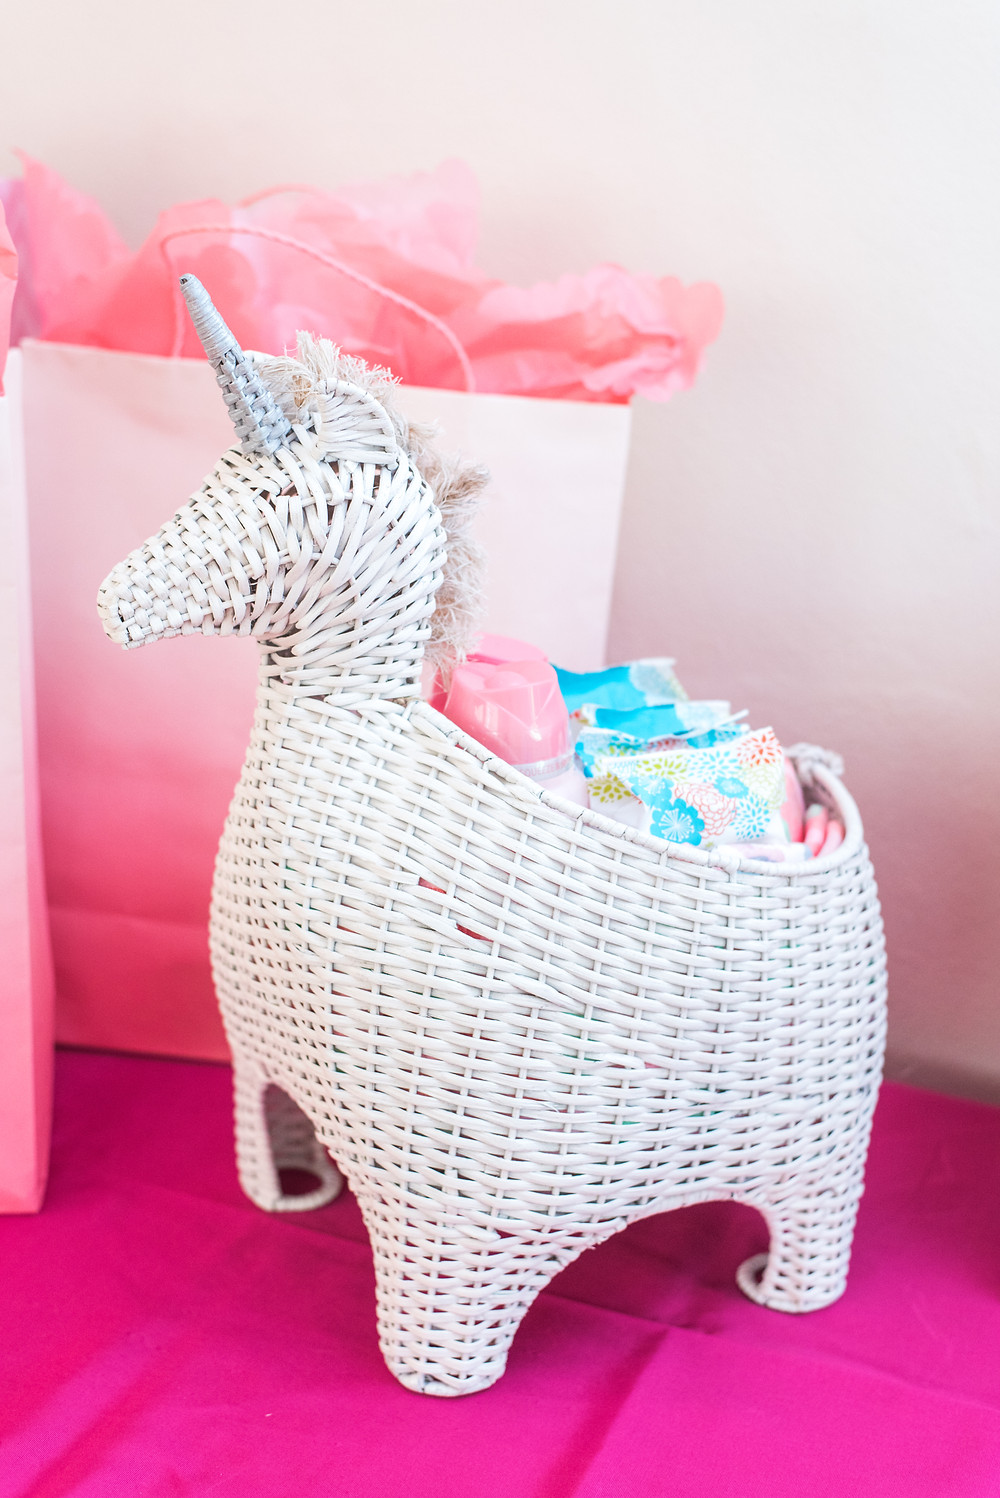 Pottery Barn Kids Unicorn Basket